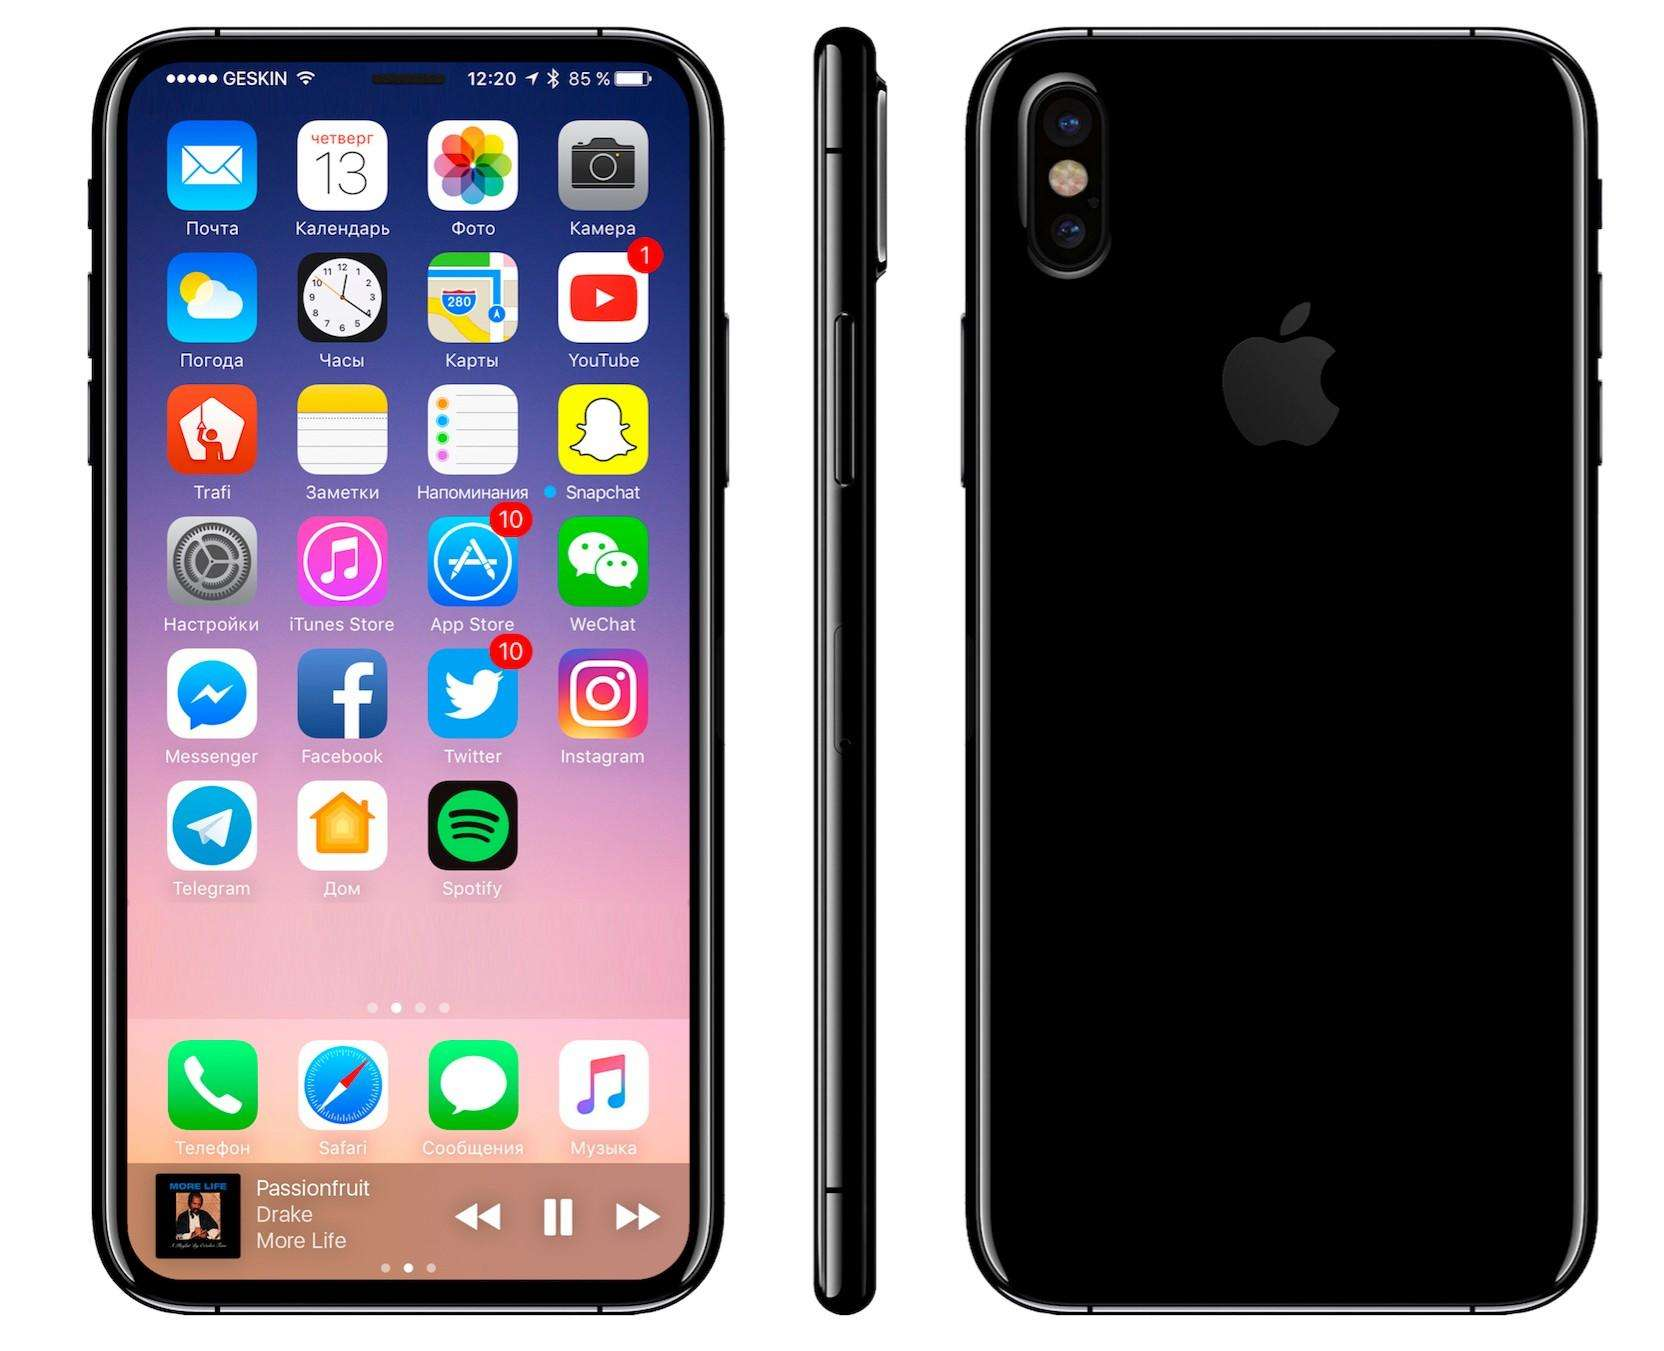 apple iPhone X, iPhone 8/8 Plus images